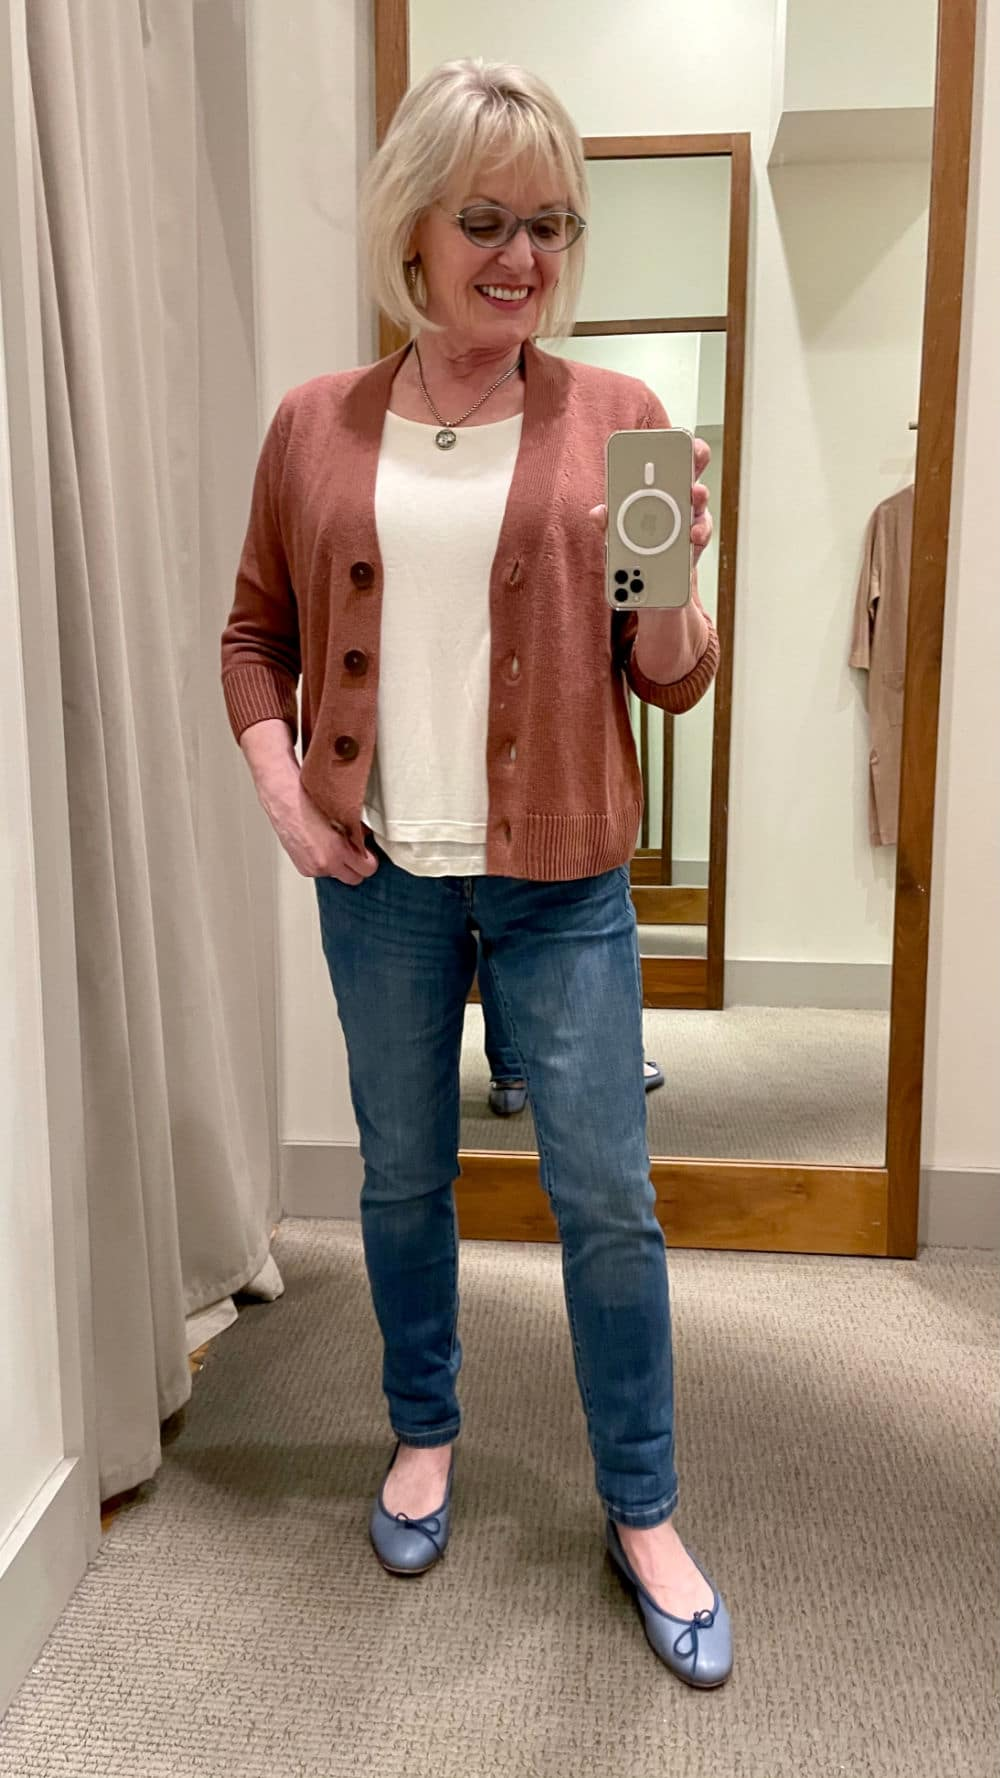 over 50 blogger wearing cropped cardigan and jeans in dressing room